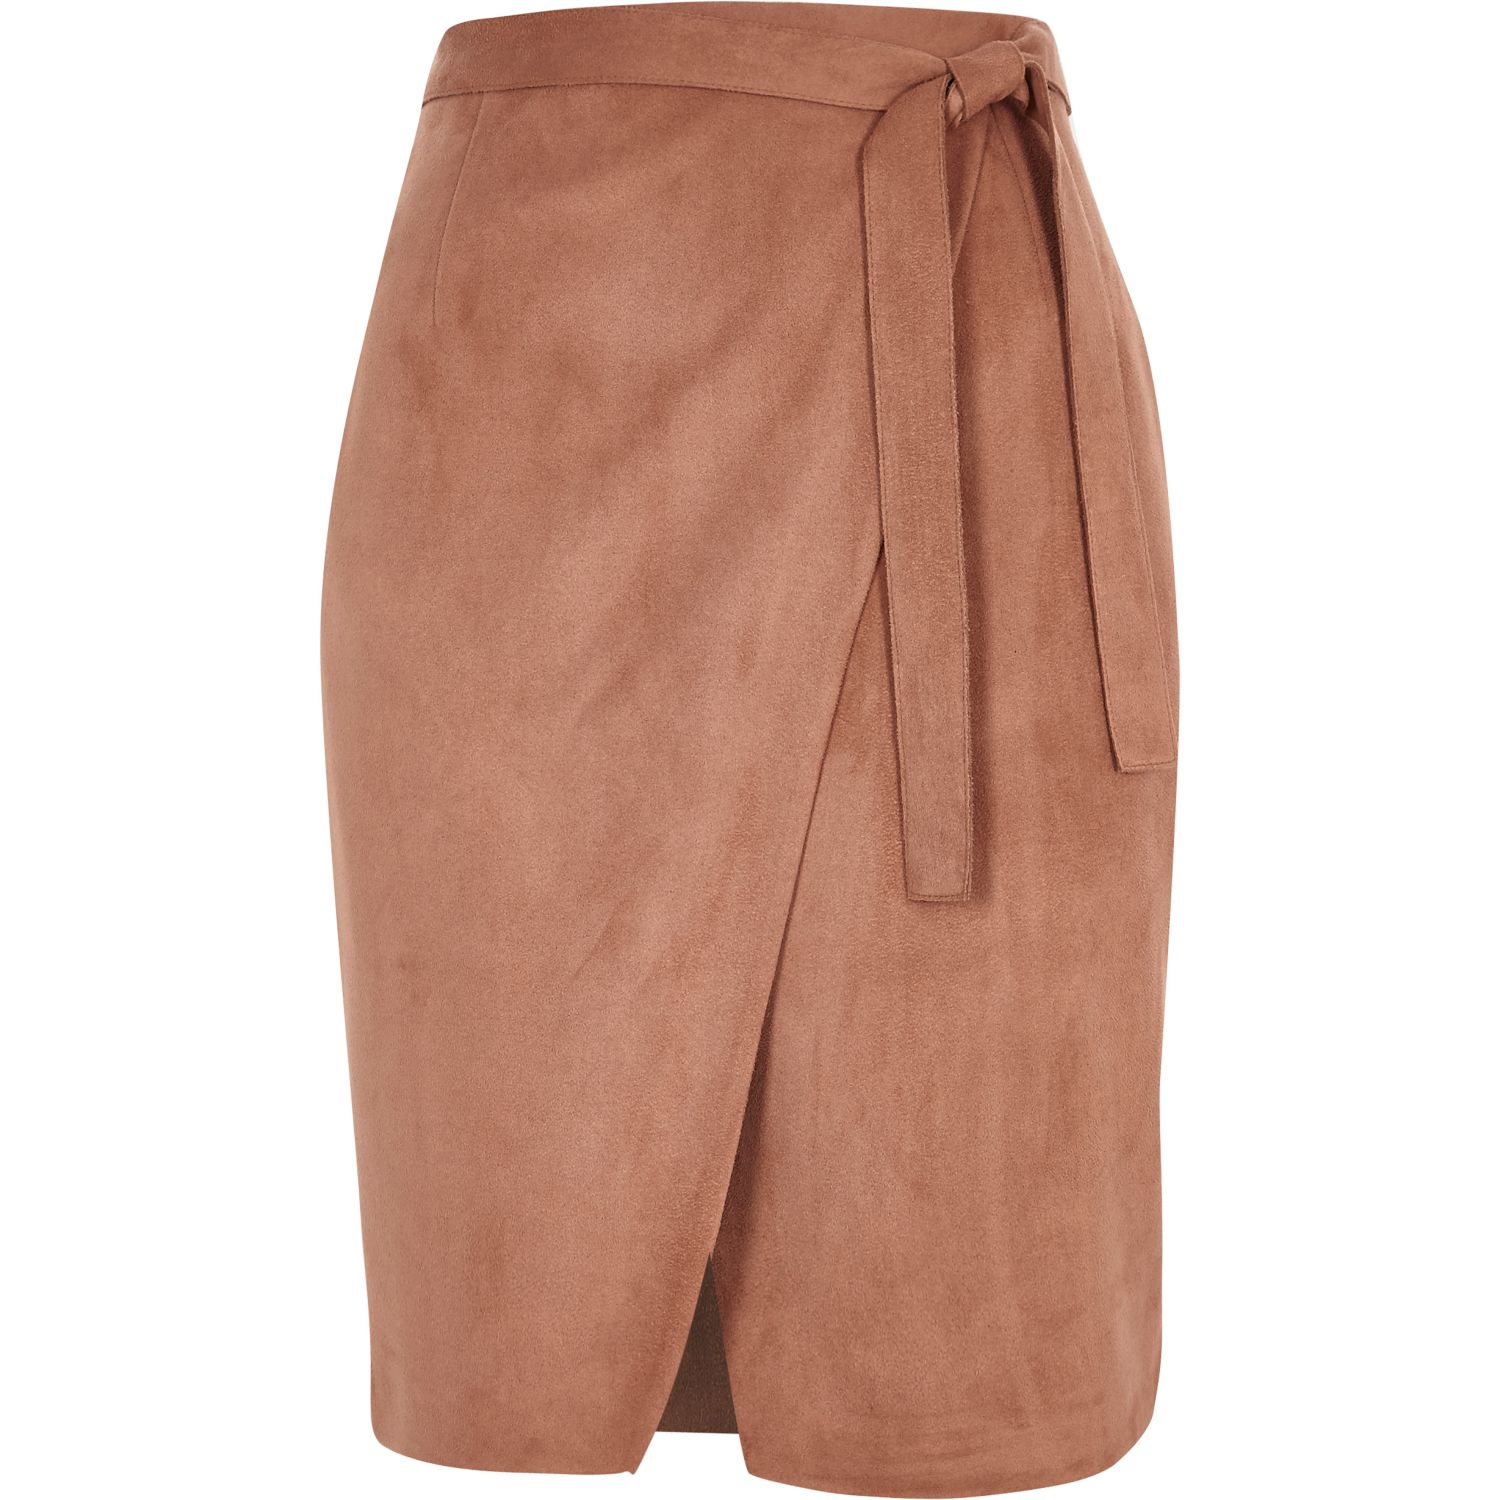 Brown Suede Skirt River Island